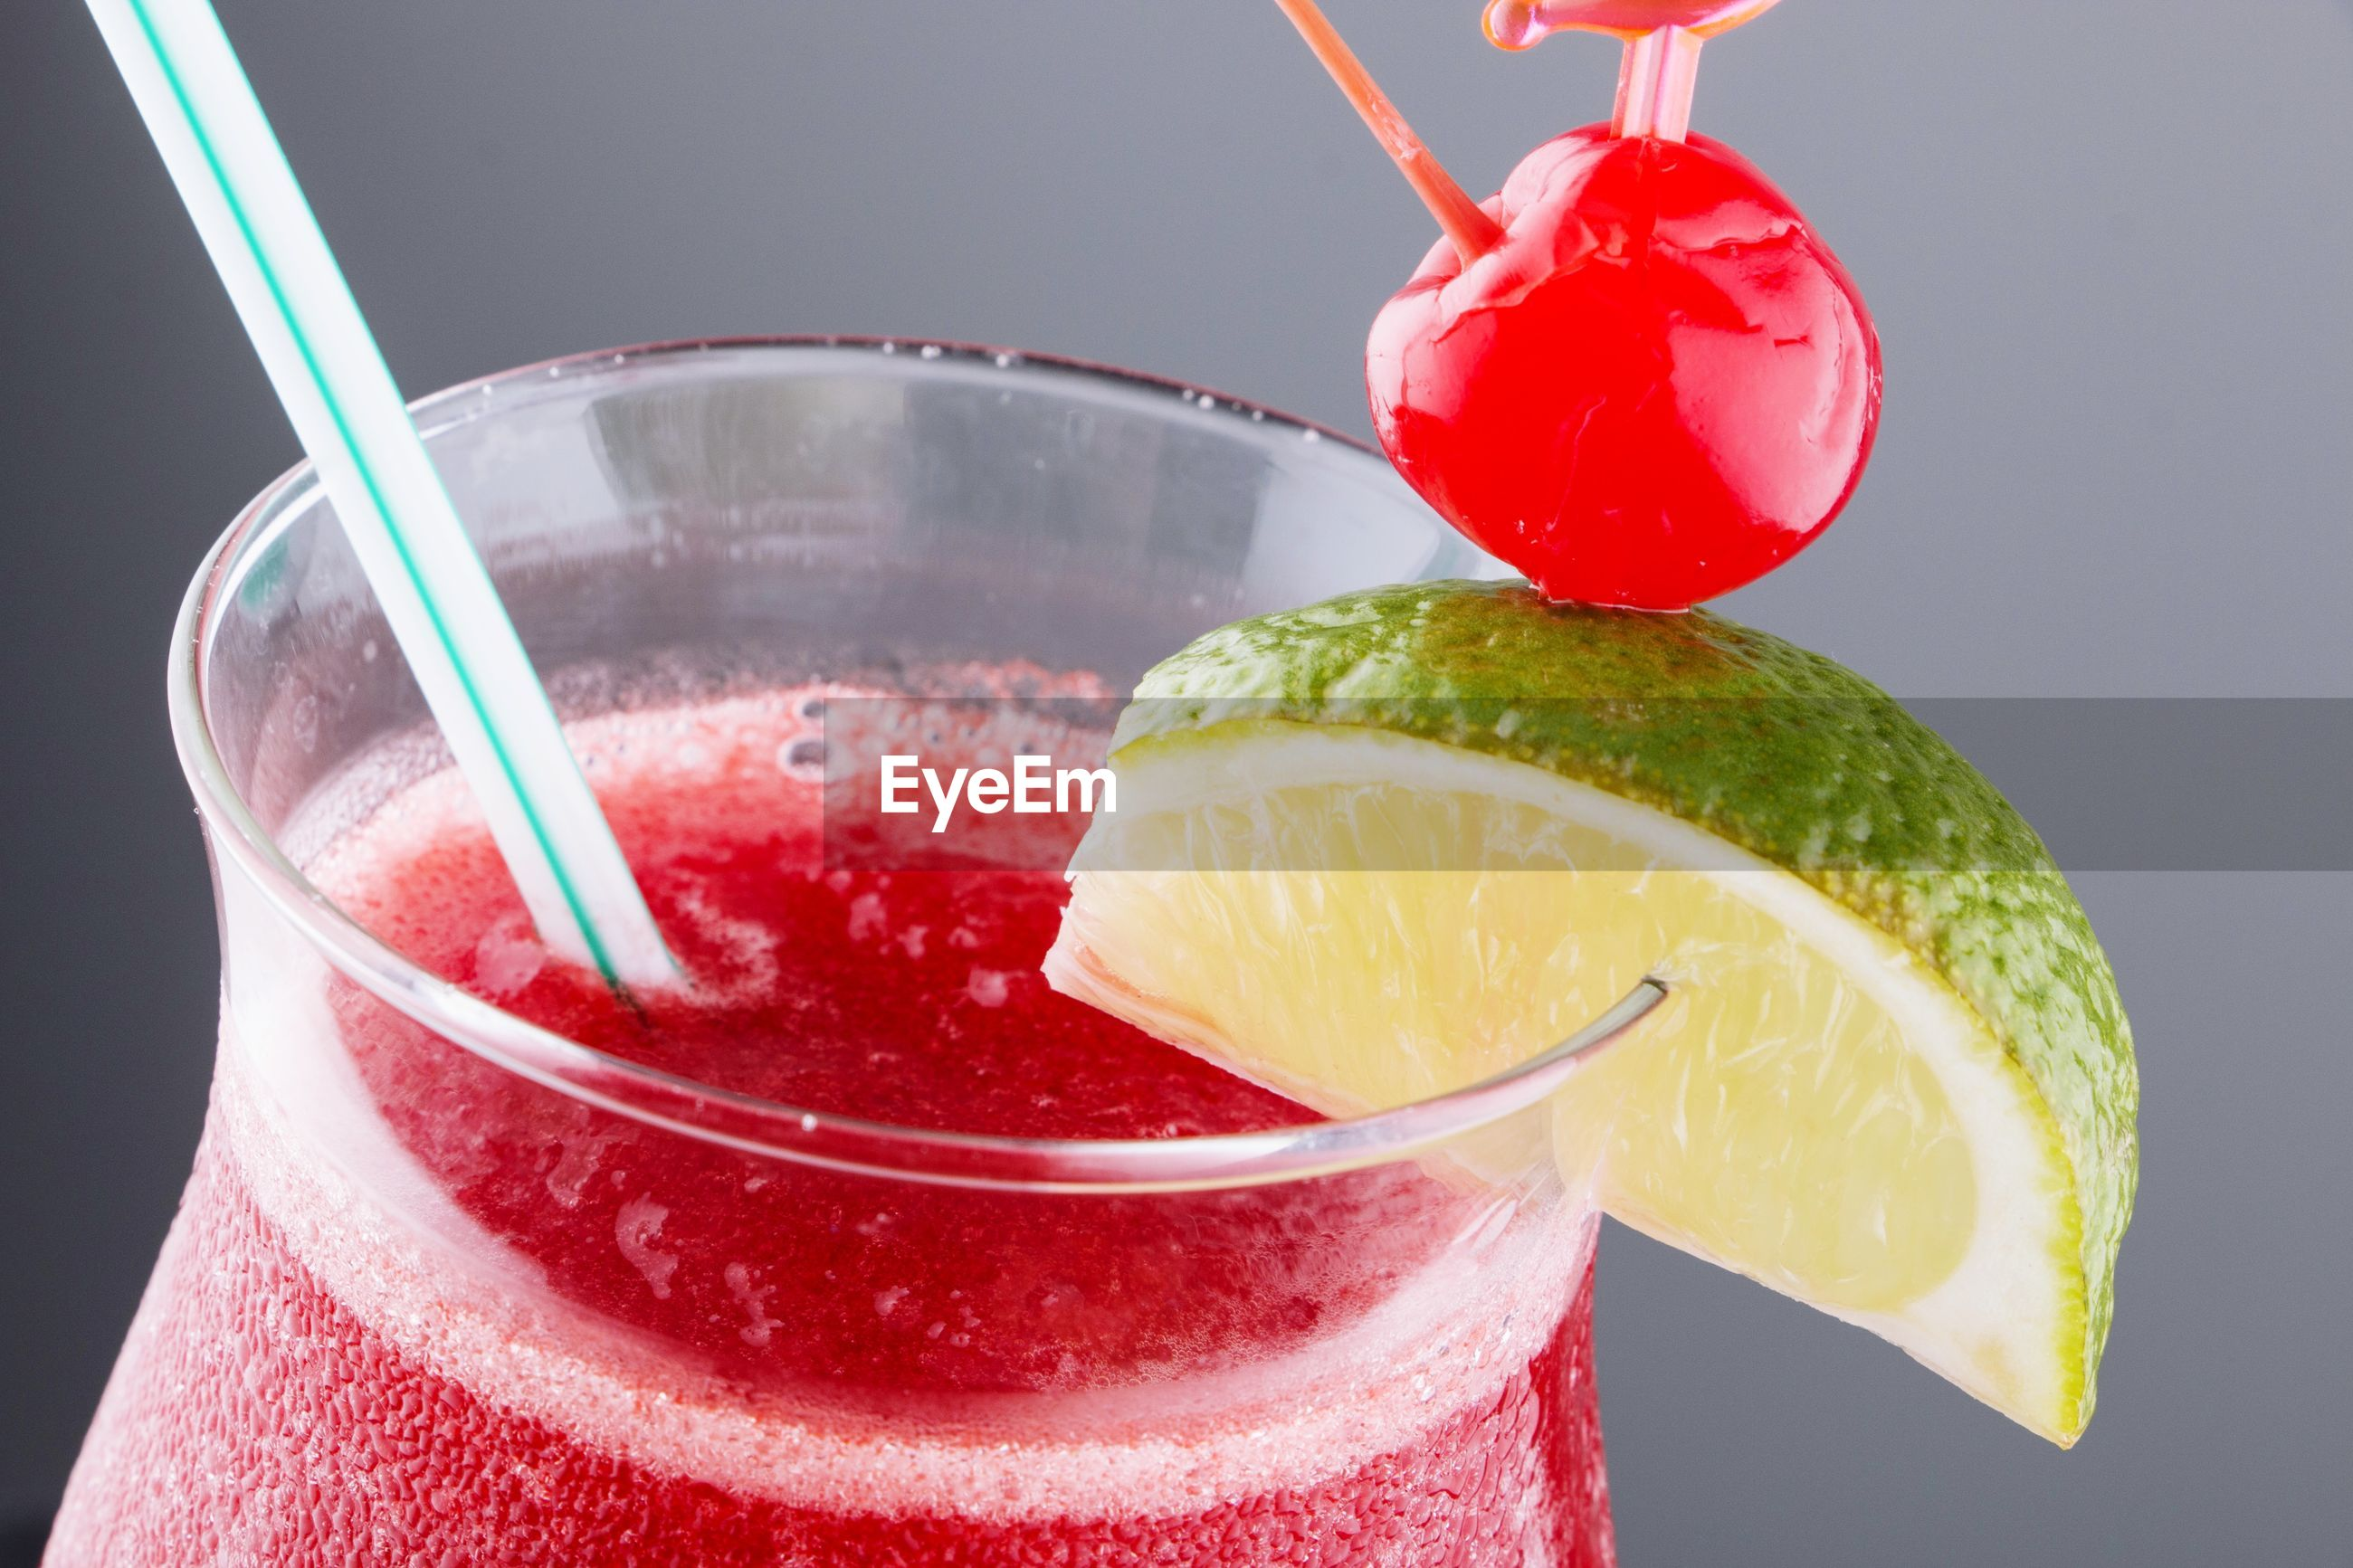 CLOSE-UP OF GLASS OF JUICE WITH DRINK